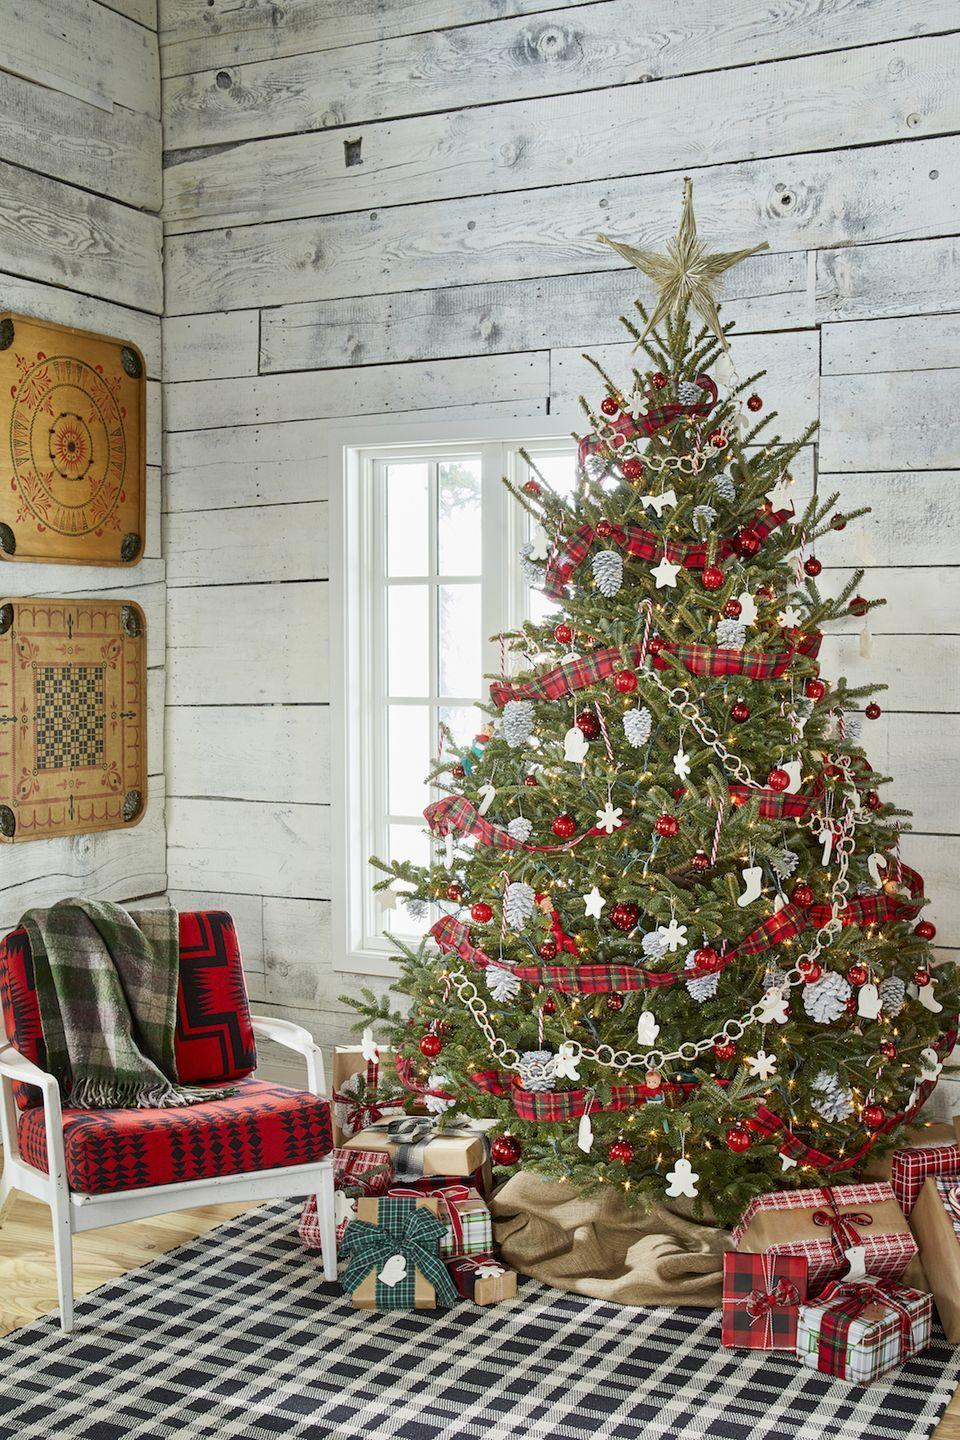 """<p>Red tartan plaid is always right for the holidays! Choose wire-edged ribbon that's at least two inches wide for a high-impact garland. </p><p><a class=""""link rapid-noclick-resp"""" href=""""https://www.amazon.com/Berwick-2-Inch-50-Yard-Clarkston-Ribbon/dp/B0091SC1AO/ref=sr_1_3?tag=syn-yahoo-20&ascsubtag=%5Bartid%7C10050.g.28703522%5Bsrc%7Cyahoo-us"""" rel=""""nofollow noopener"""" target=""""_blank"""" data-ylk=""""slk:SHOP PLAID RIBBON"""">SHOP PLAID RIBBON</a></p>"""